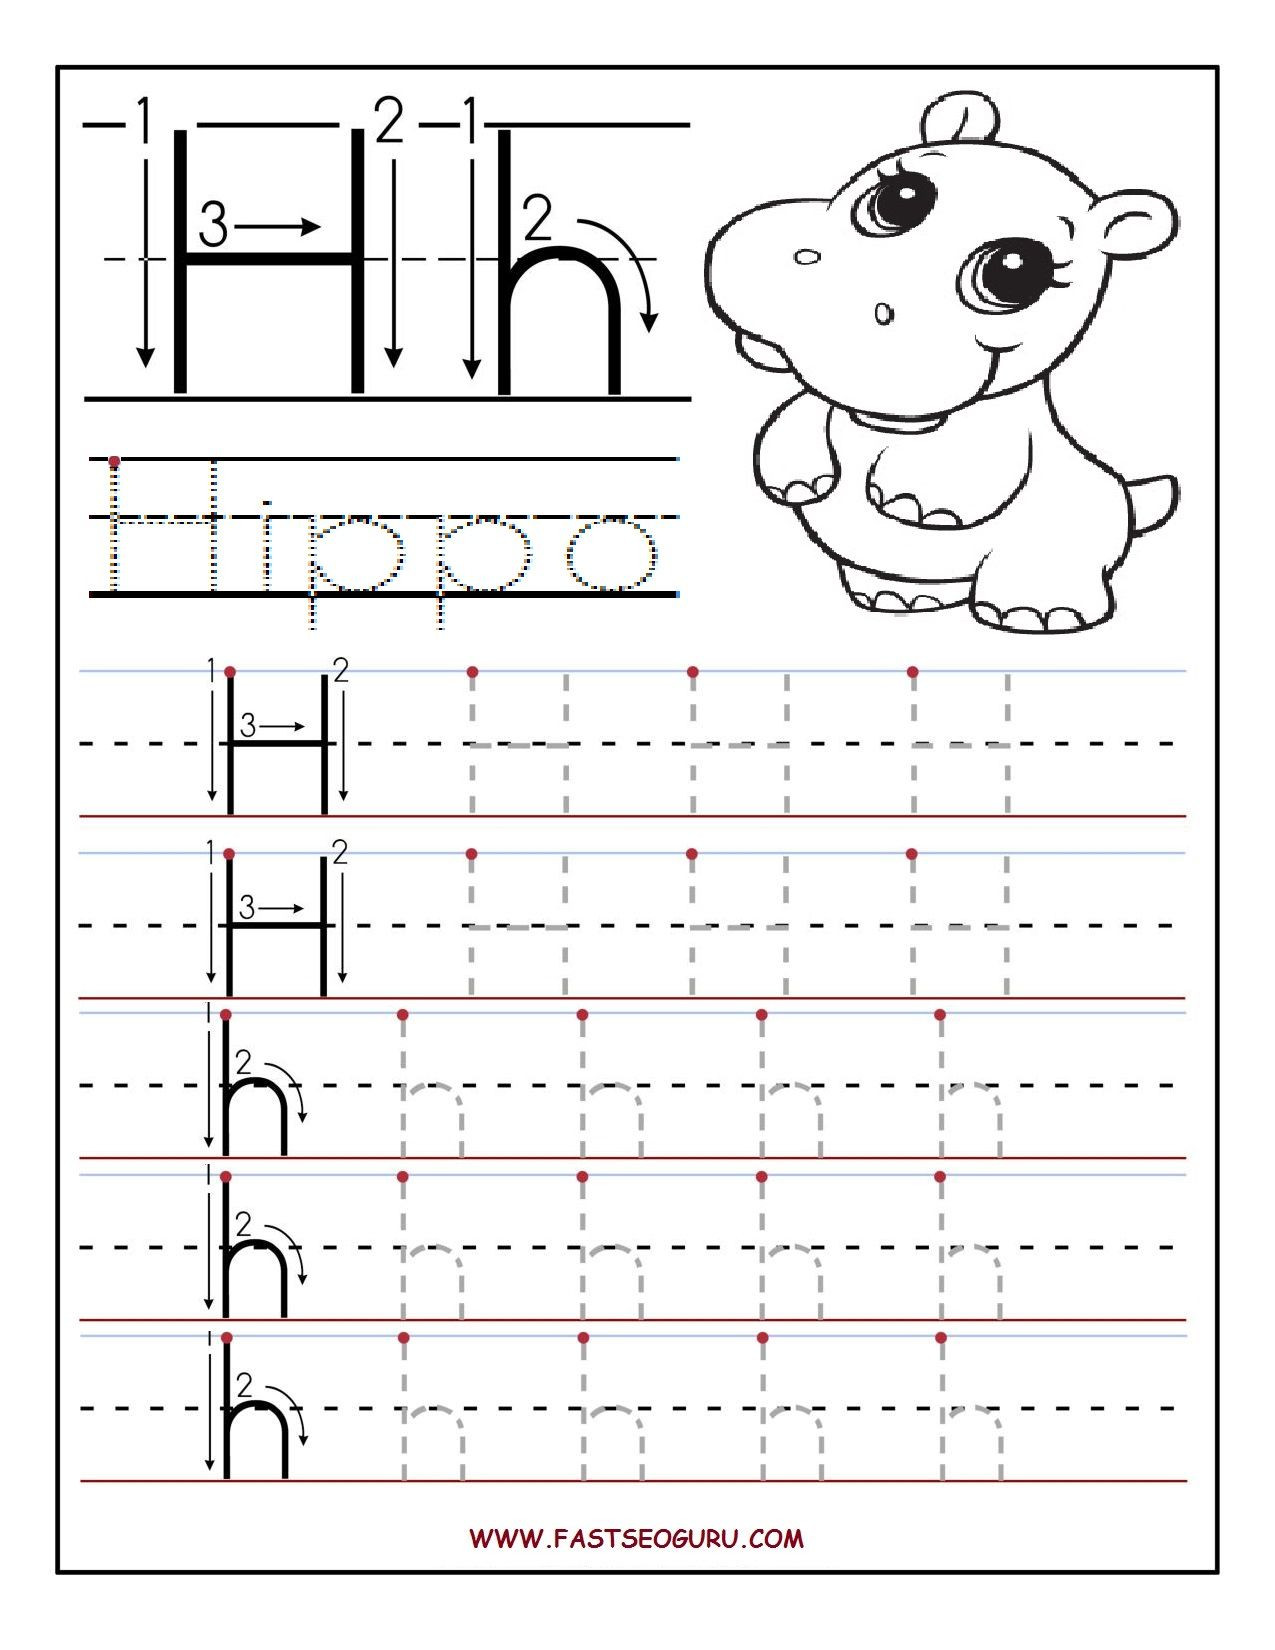 Letter H Tracing Worksheets Preschool Printable Letter H Tracing Worksheets for Preschool